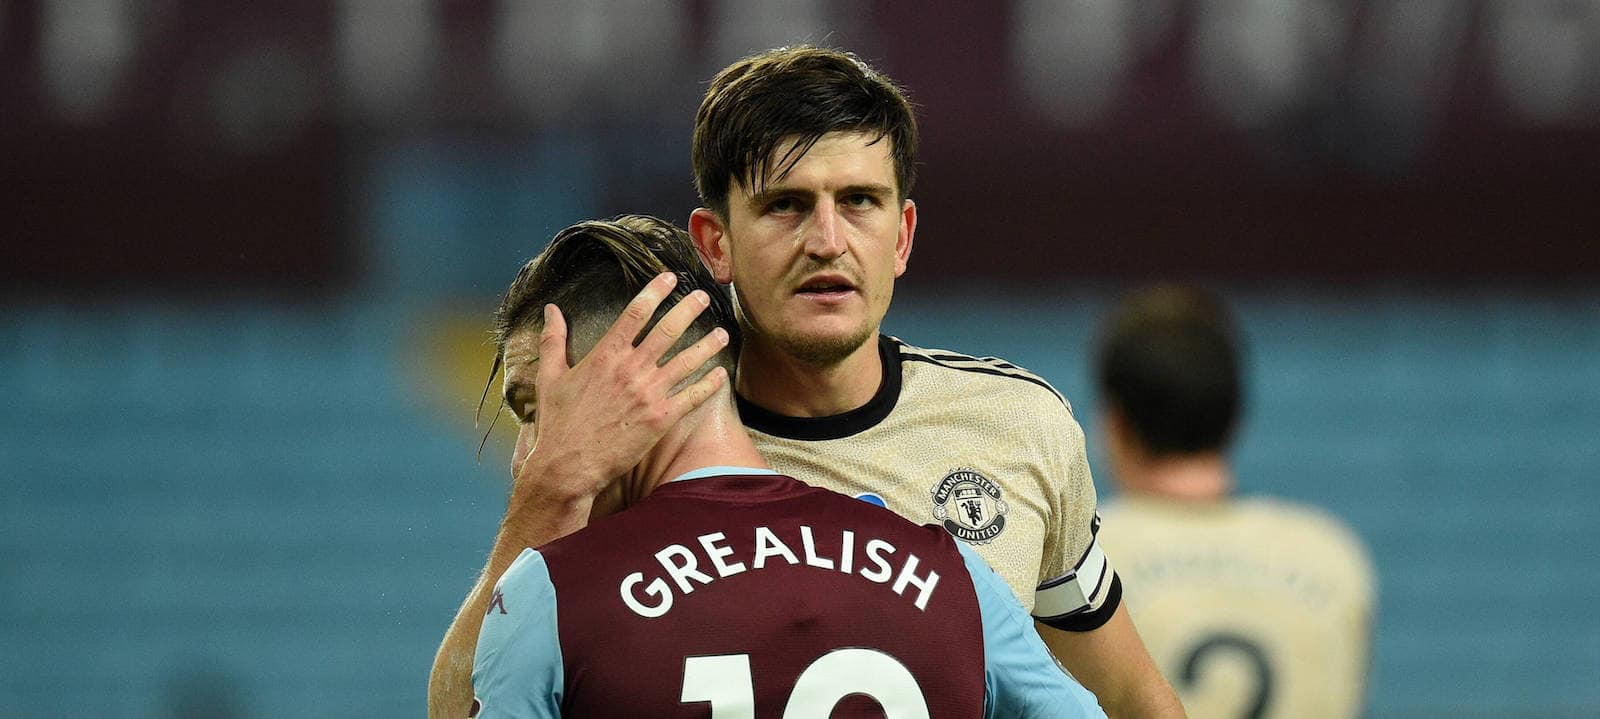 Player ratings: Aston Villa 1-0 Manchester United – Issues that Solskjaer must fix